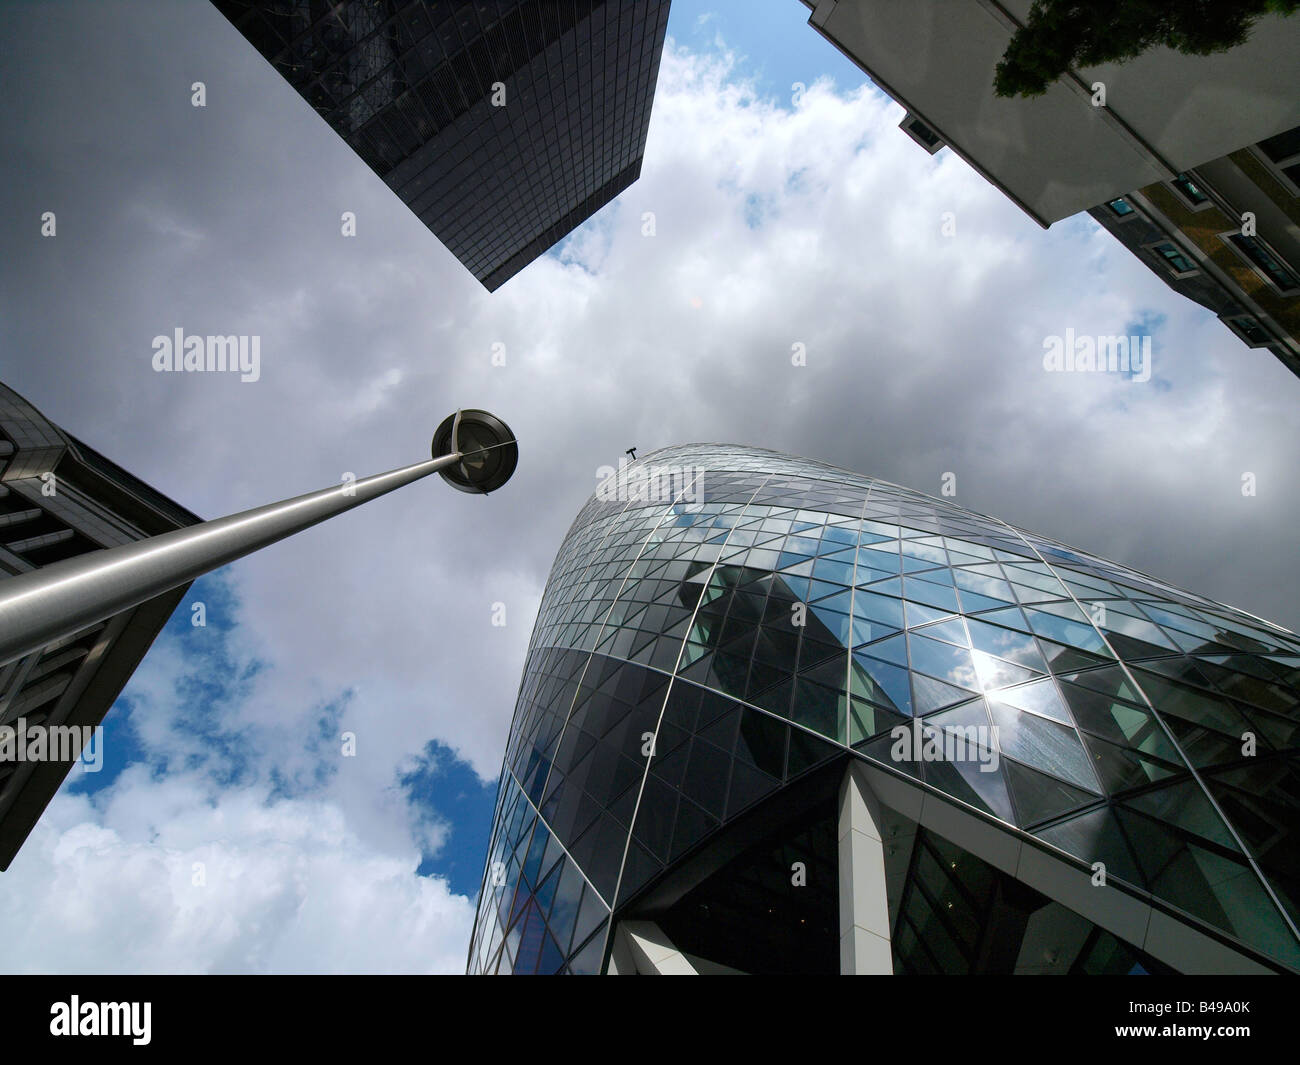 Looking up in the London City dynamic image with Gherkin building and nice clouds - Stock Image